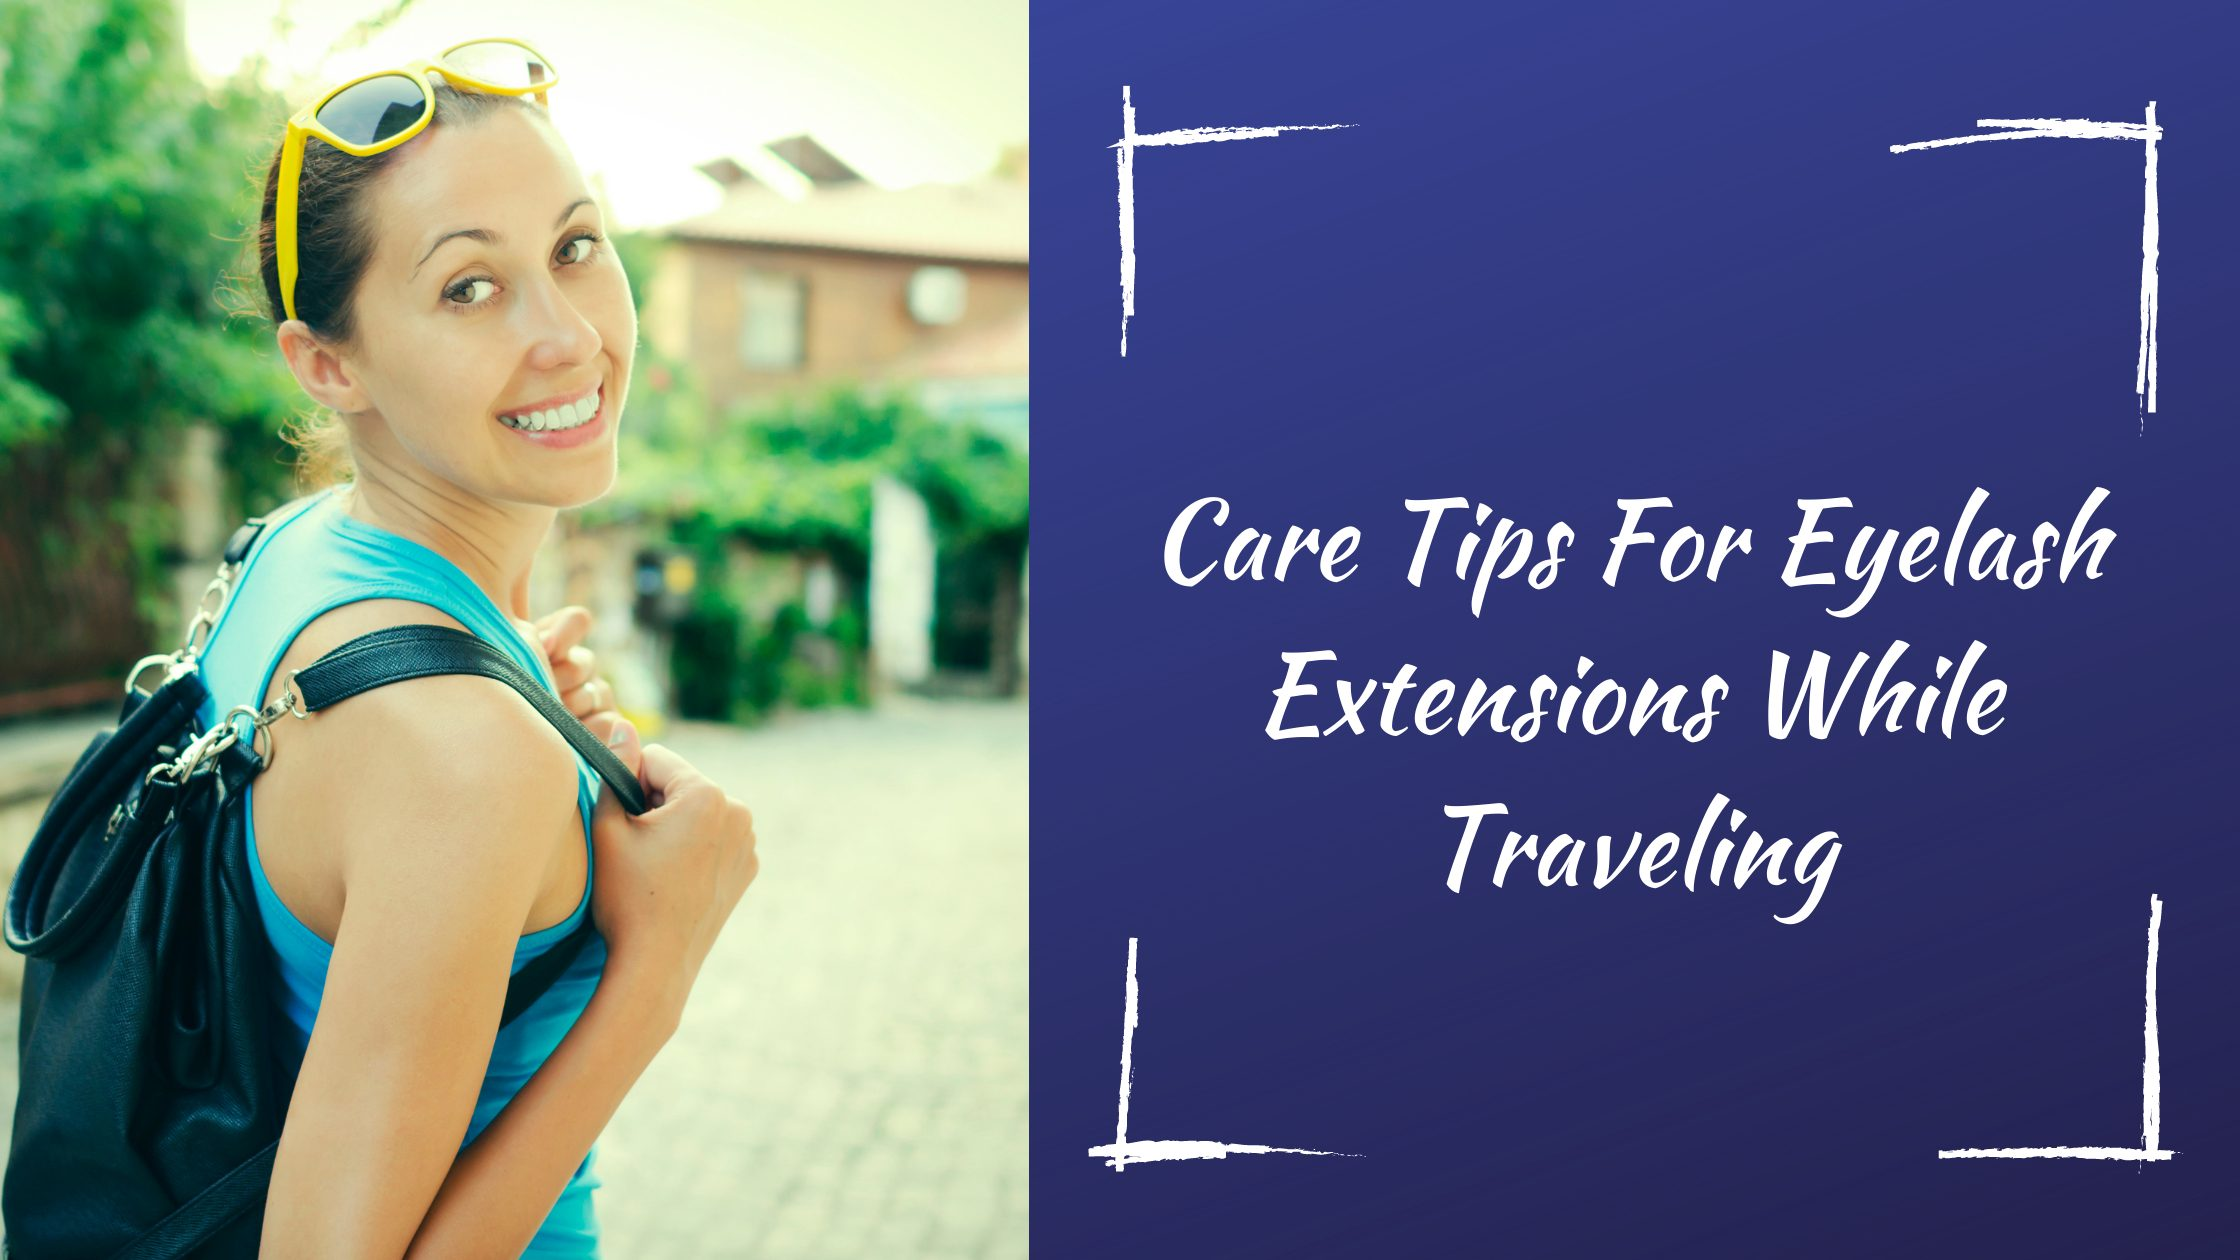 Care Tips For Eyelash Extensions While Traveling